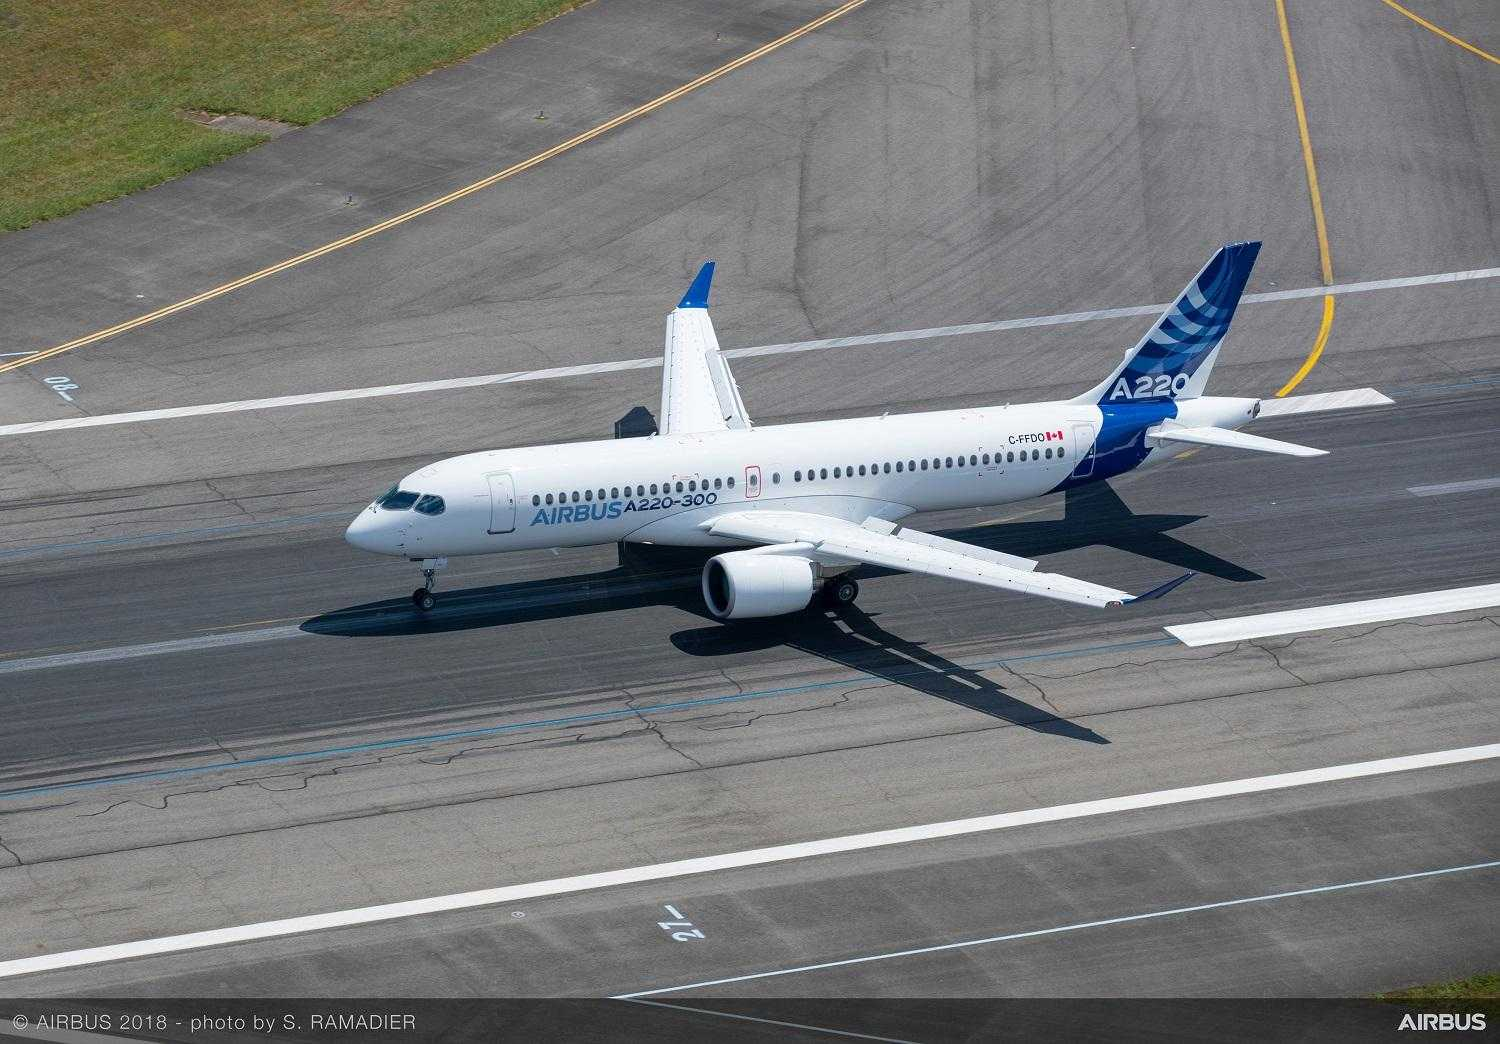 Airbus-A220-300-new-member-of-the-airbus-single-aisle-family-landing-019